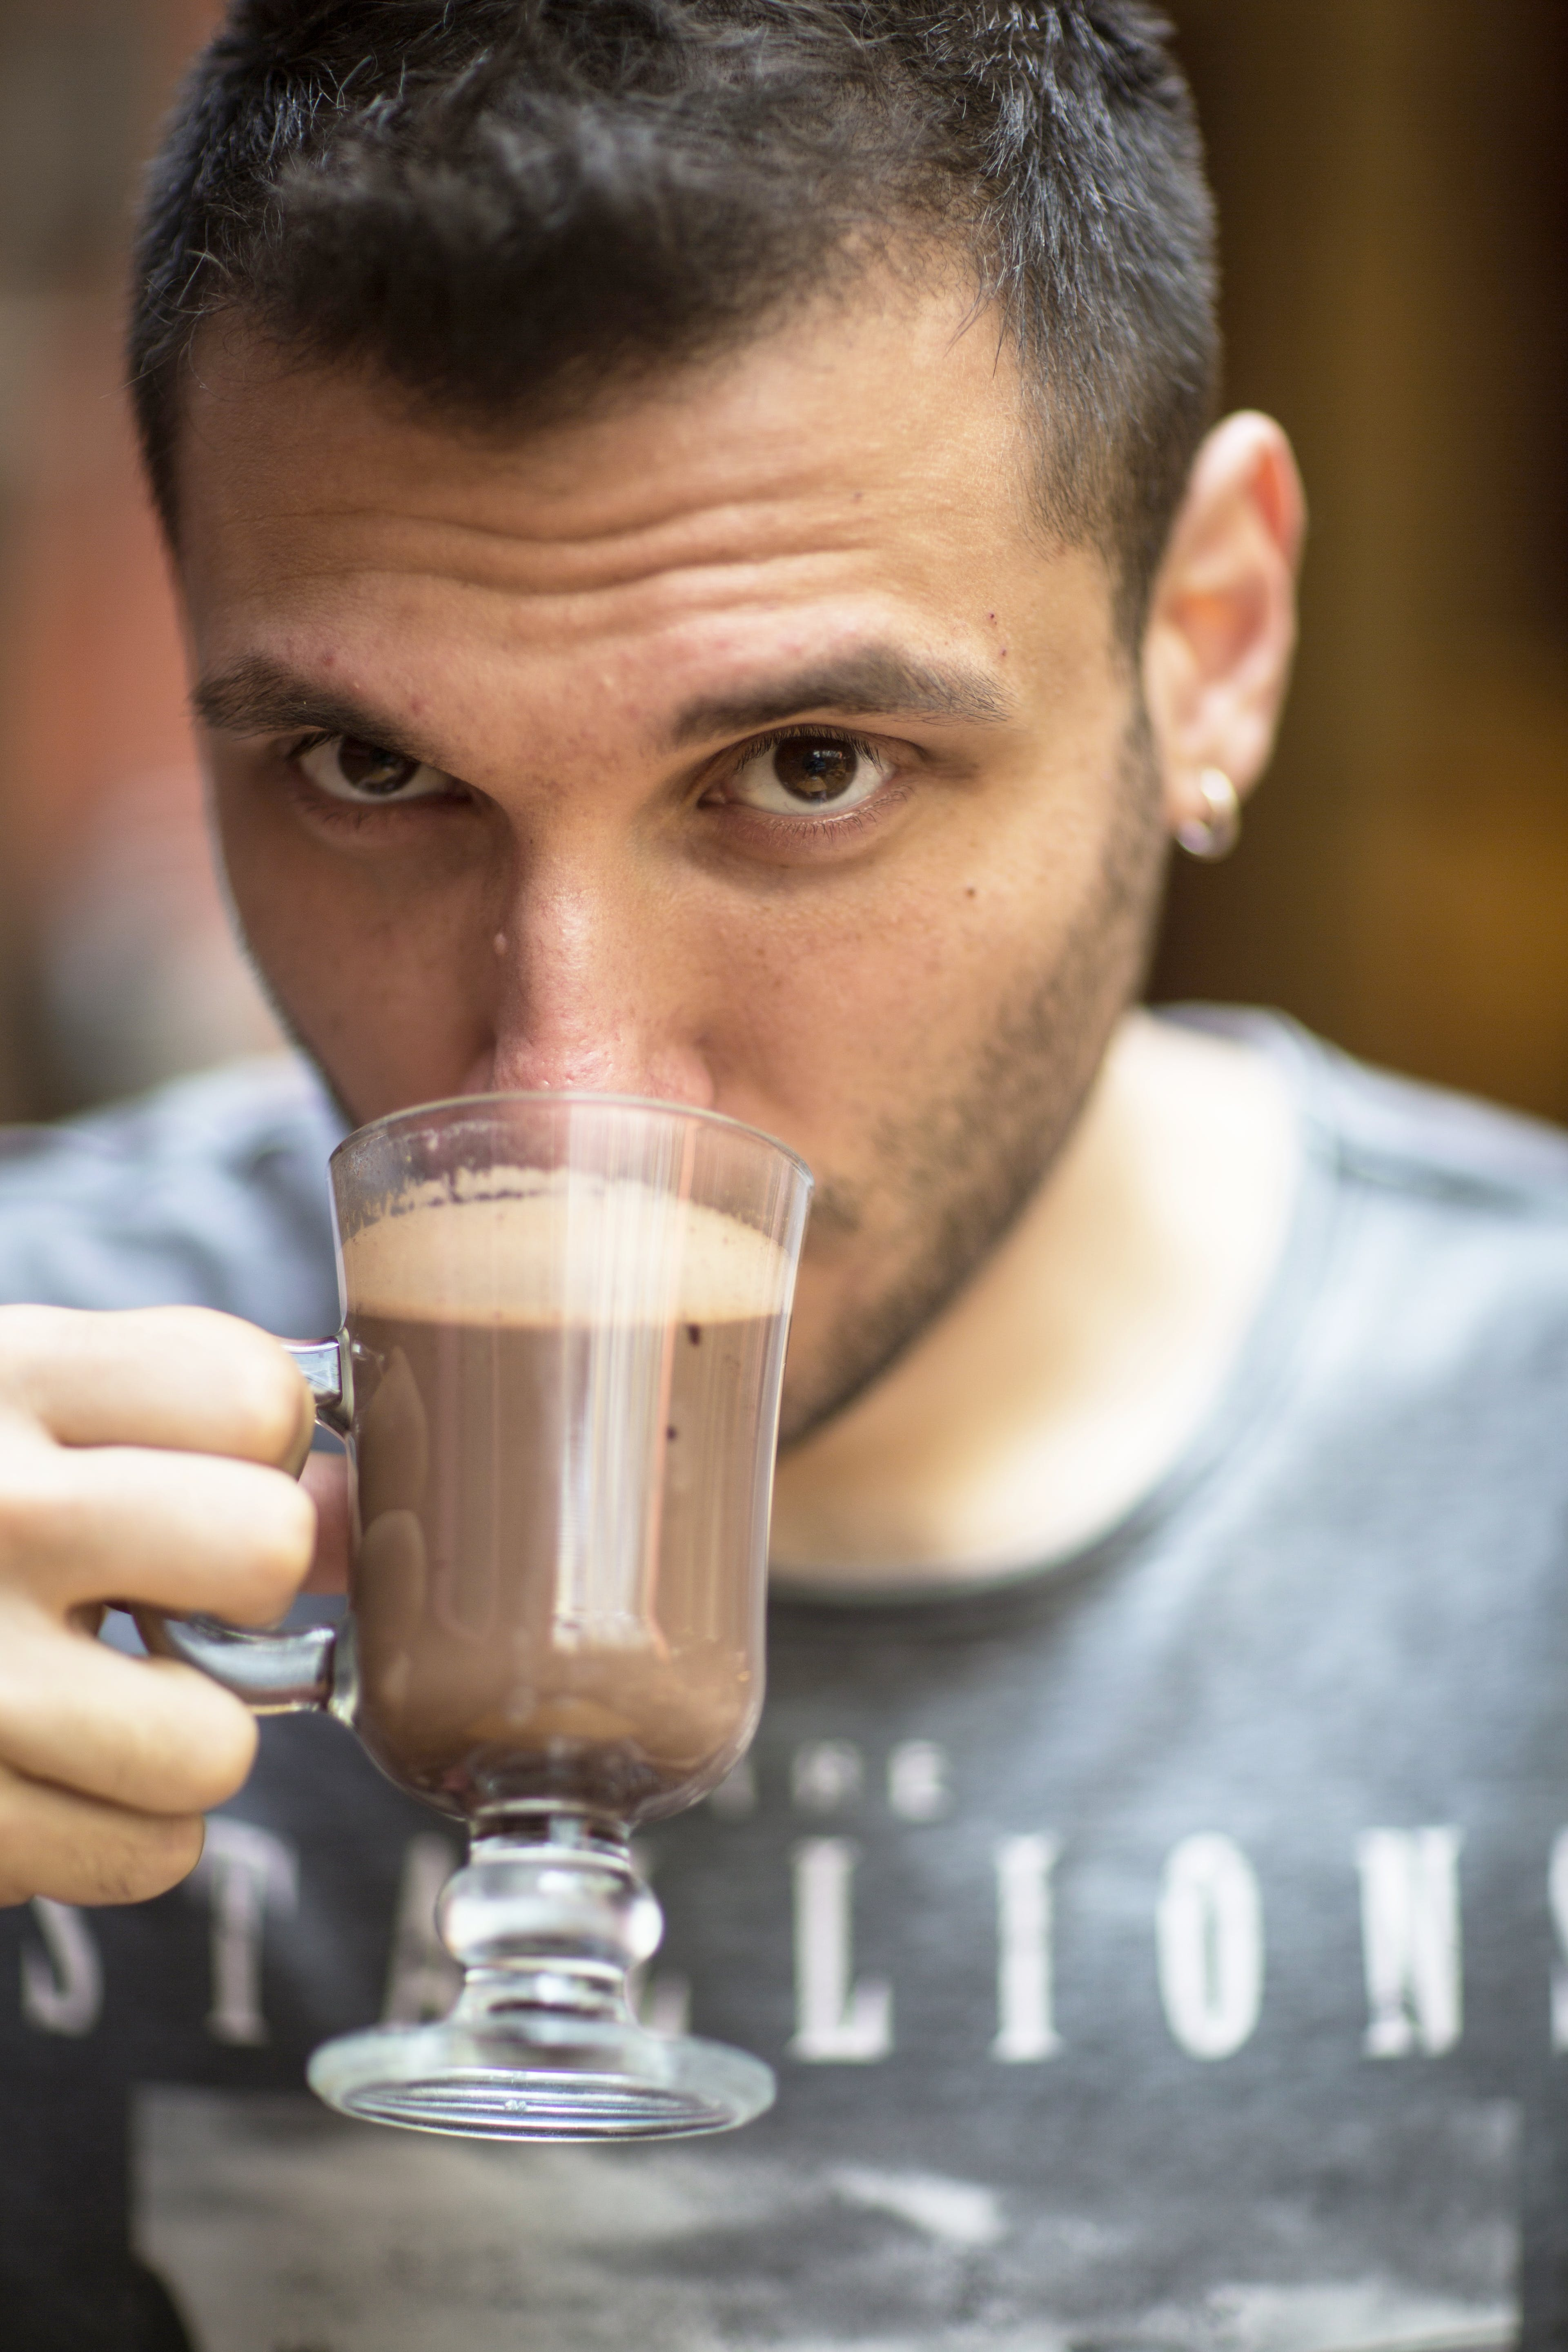 Man Sipping Chocolate Drink